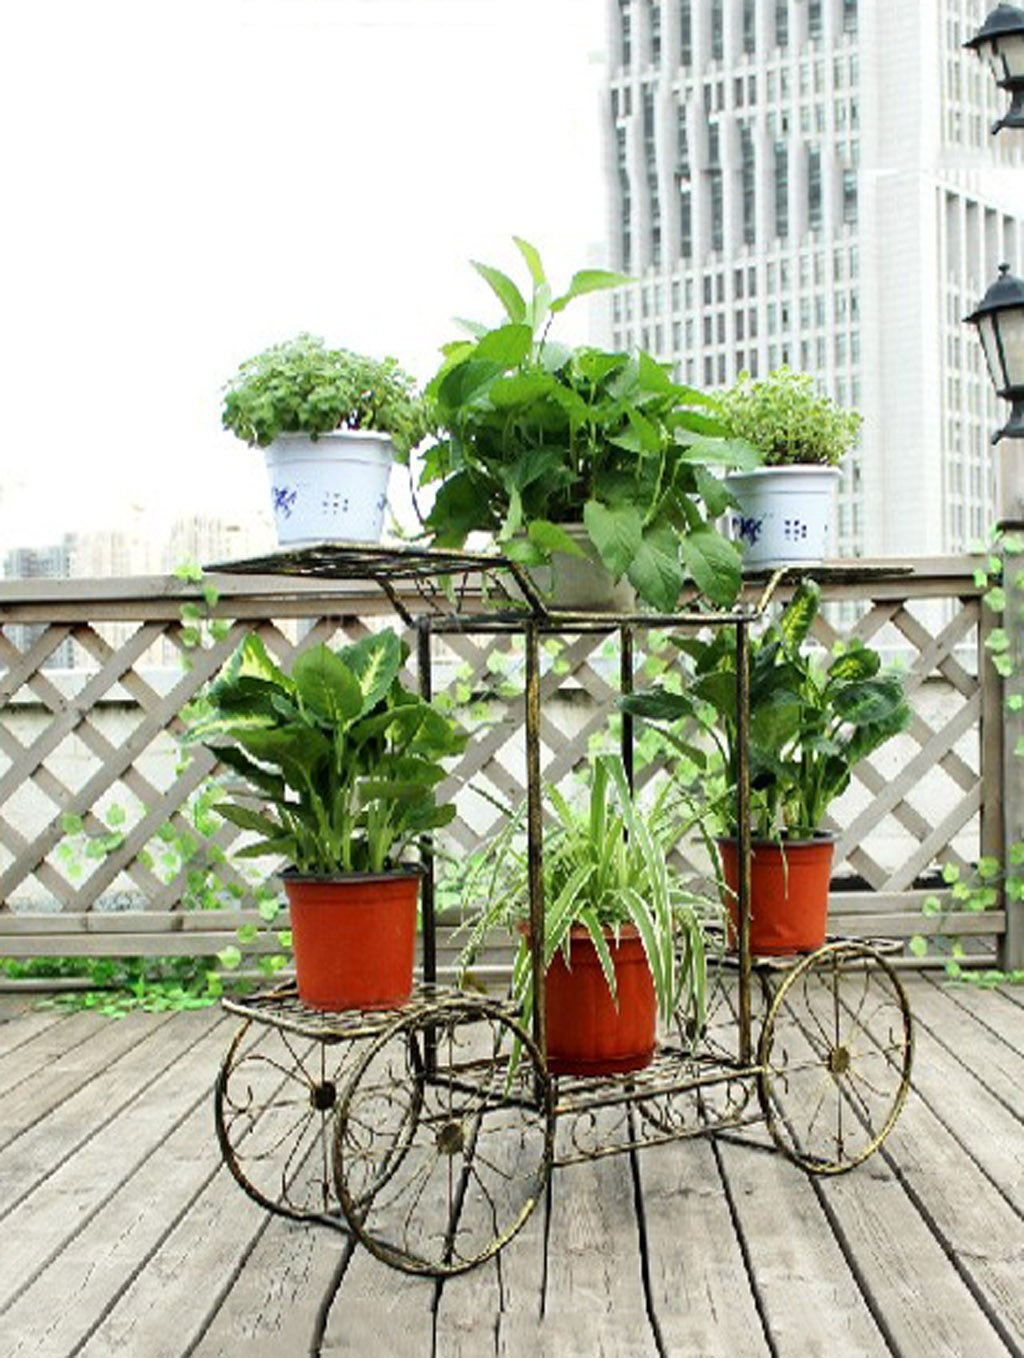 LB Multi-Funktions-Eisen-Blumen-Rack montiert kreative einfache Blumen-Topf-Feld im europäischen Stil High-End-Bonsai-Regale Multi-Floor-Balkon Retro-Topf-Balkon Blumentopf Montage Blumentopf Regal ( größe : C-88*66cm )